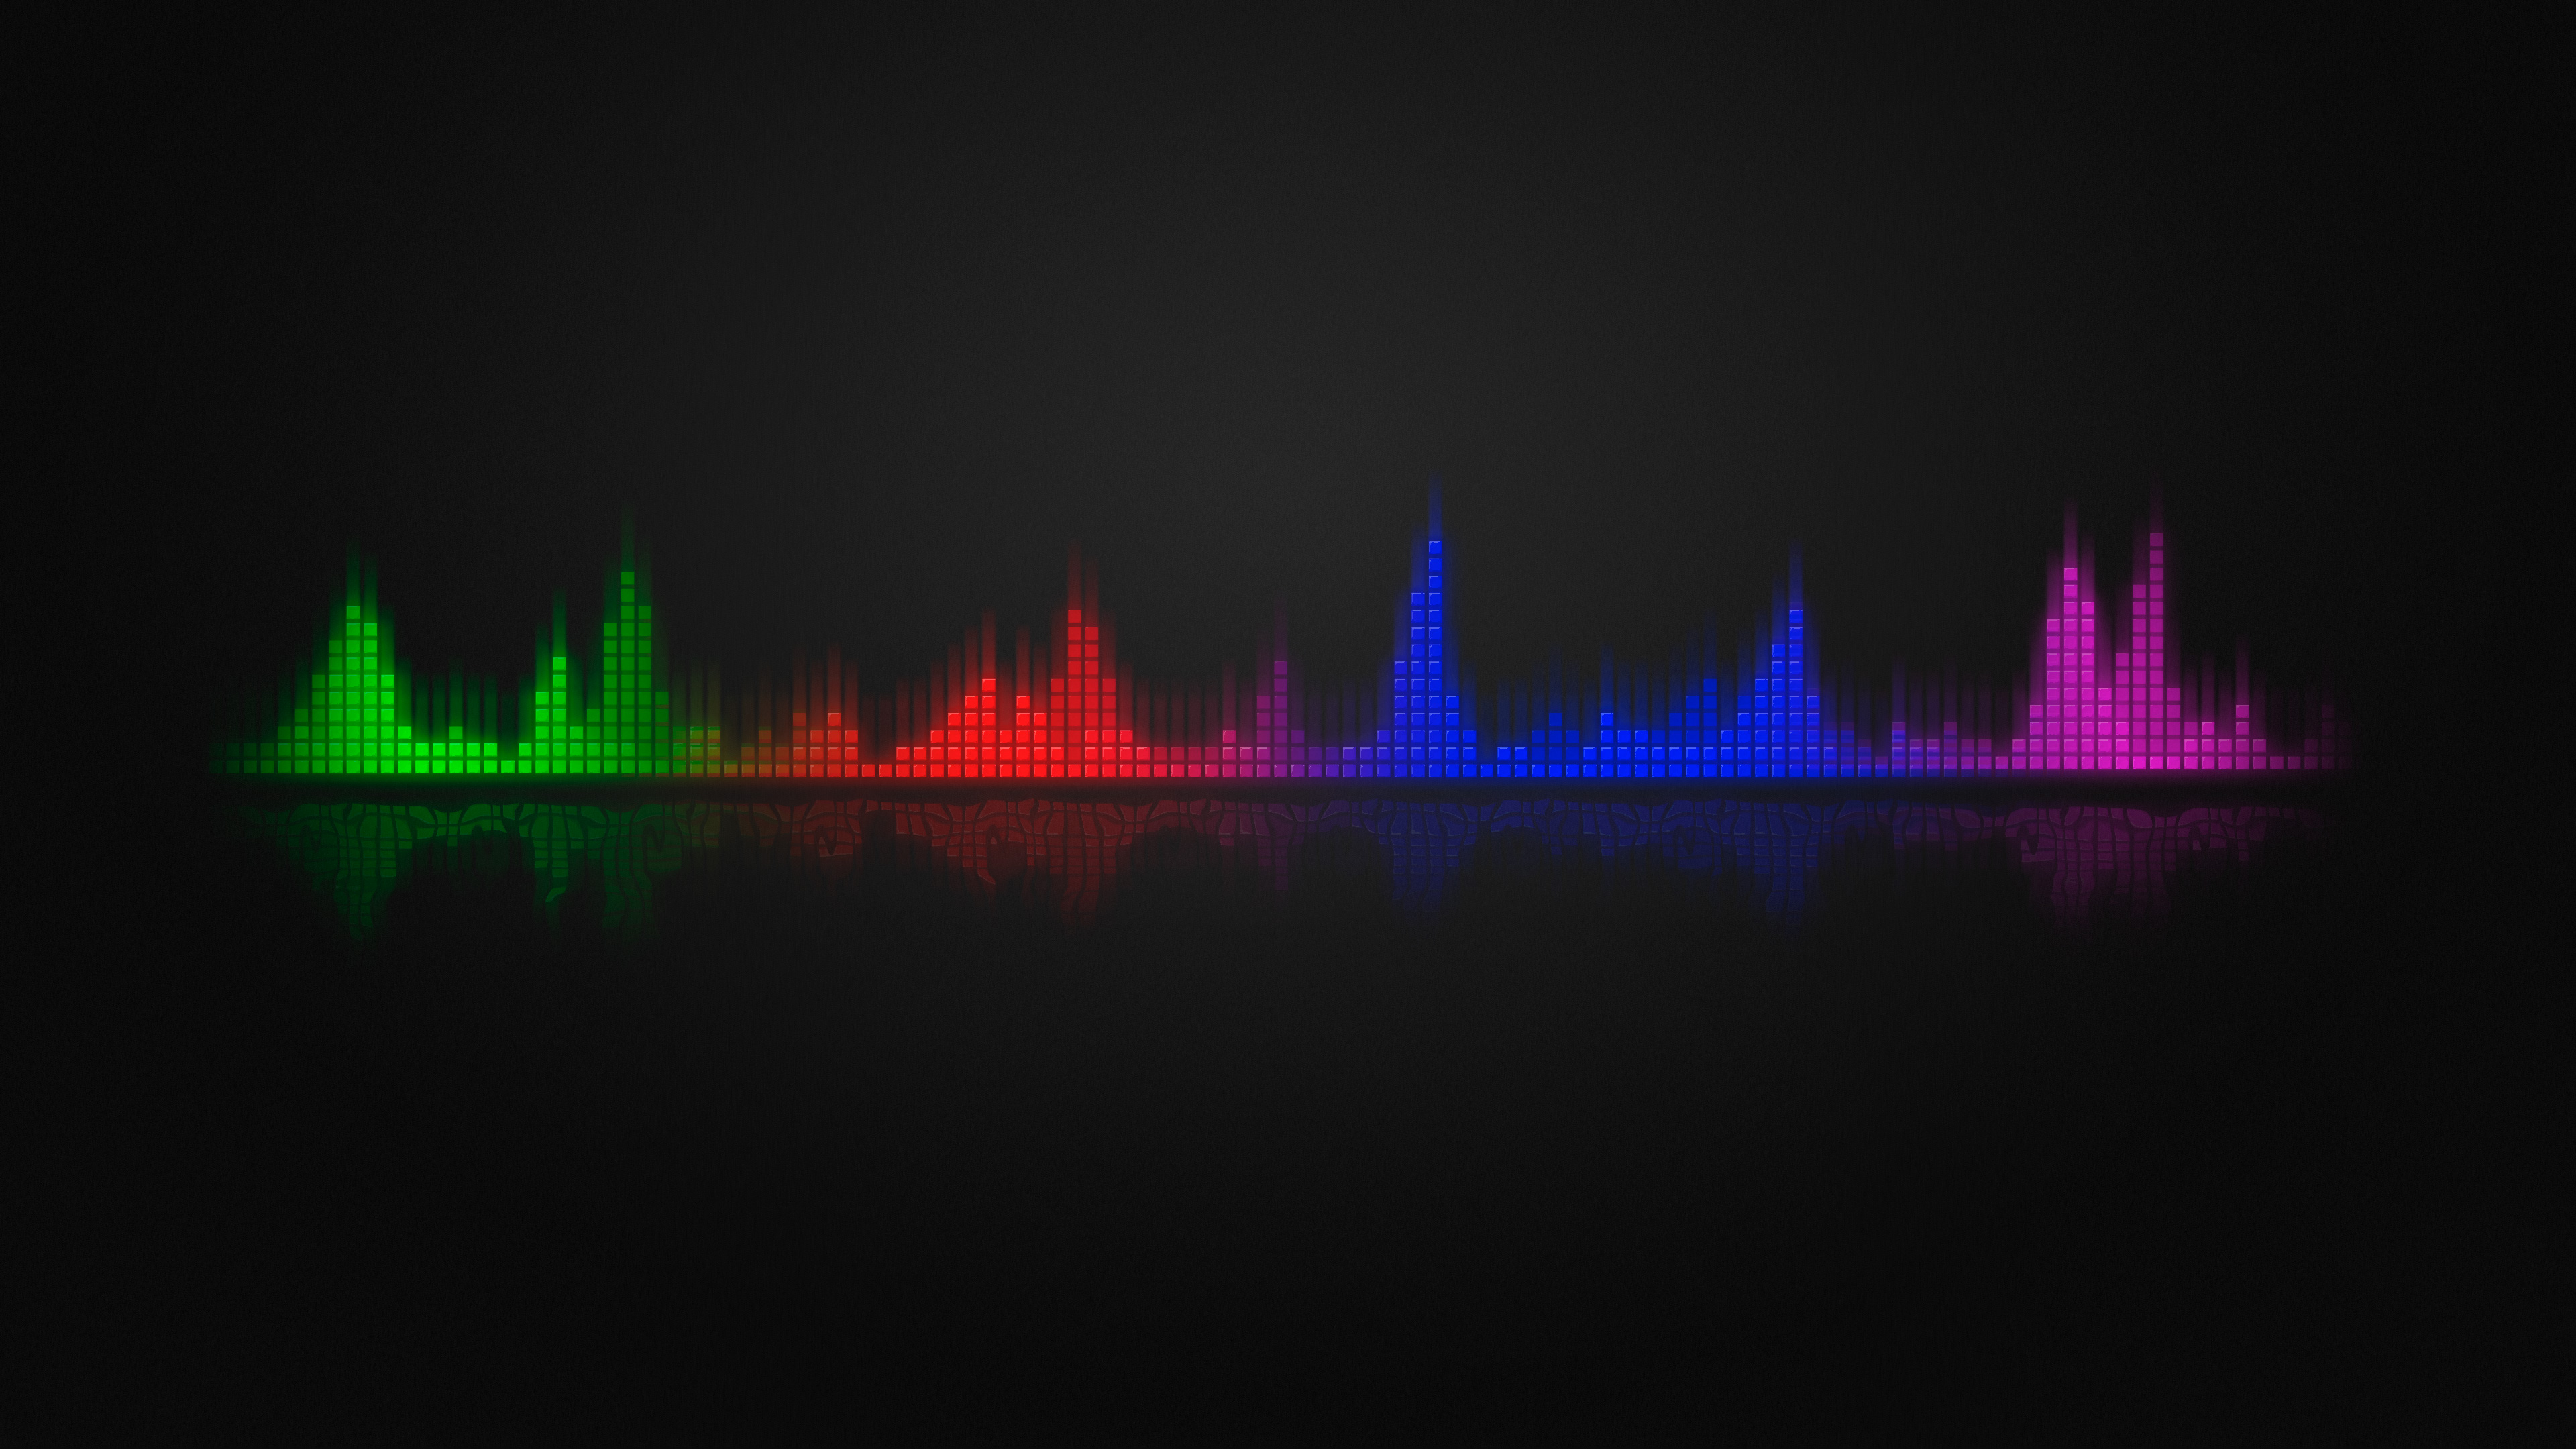 Download Free 3d Music Equalizer Wallpapers Hd: Equalizer, HD Abstract, 4k Wallpapers, Images, Backgrounds